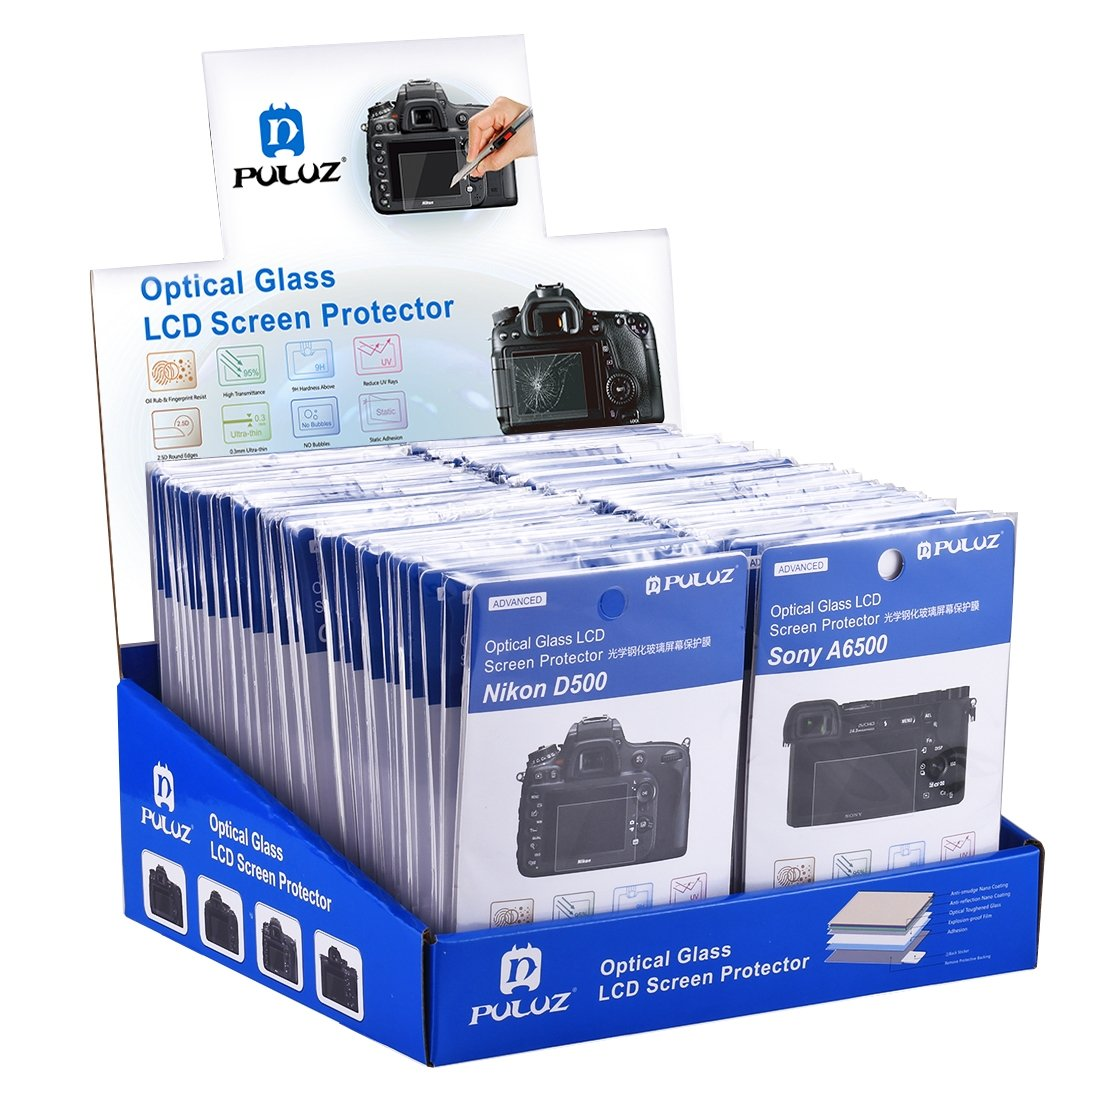 Camera Accessories 60 PCS 2.5D Curved Edge 9H Surface Hardness Tempered Glass Screen Protector Kits for Canon 5D Mark IV/Mark III, Sony RX100 / A7M2 / A7R / A7R2, Nikon D3200 / D3300, Panasonic GH5, by FUSHENG